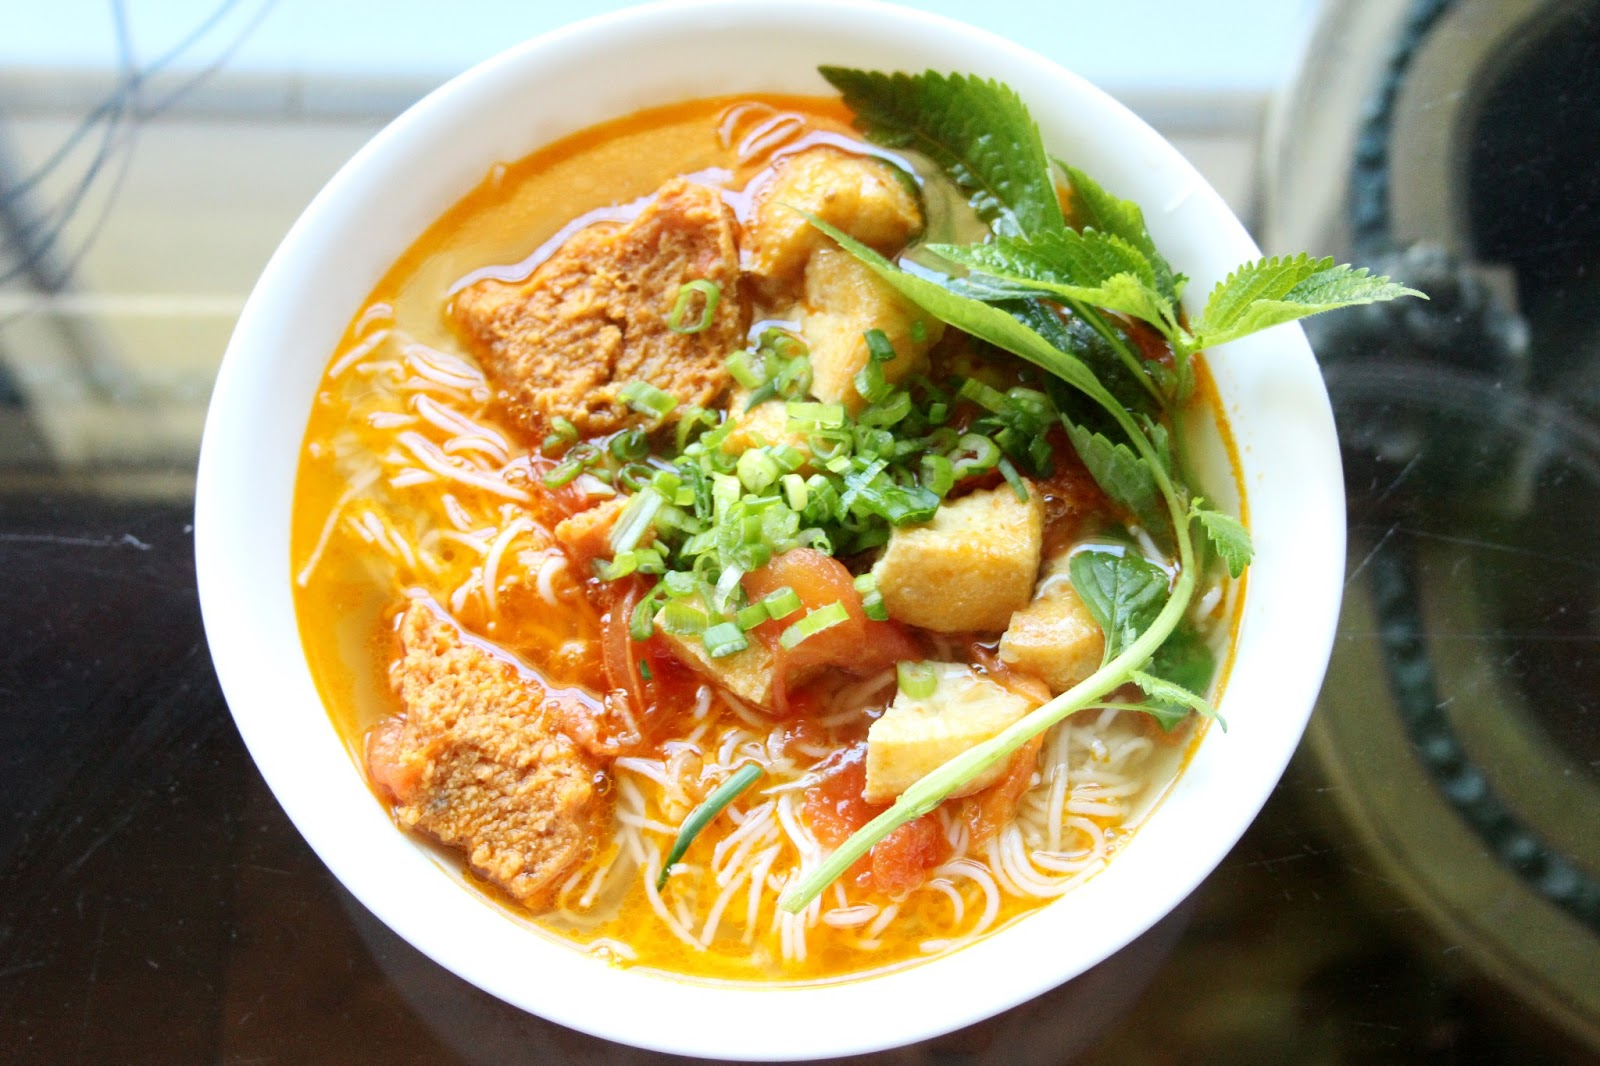 Let's enjoy Bun Rieu in Hanoi